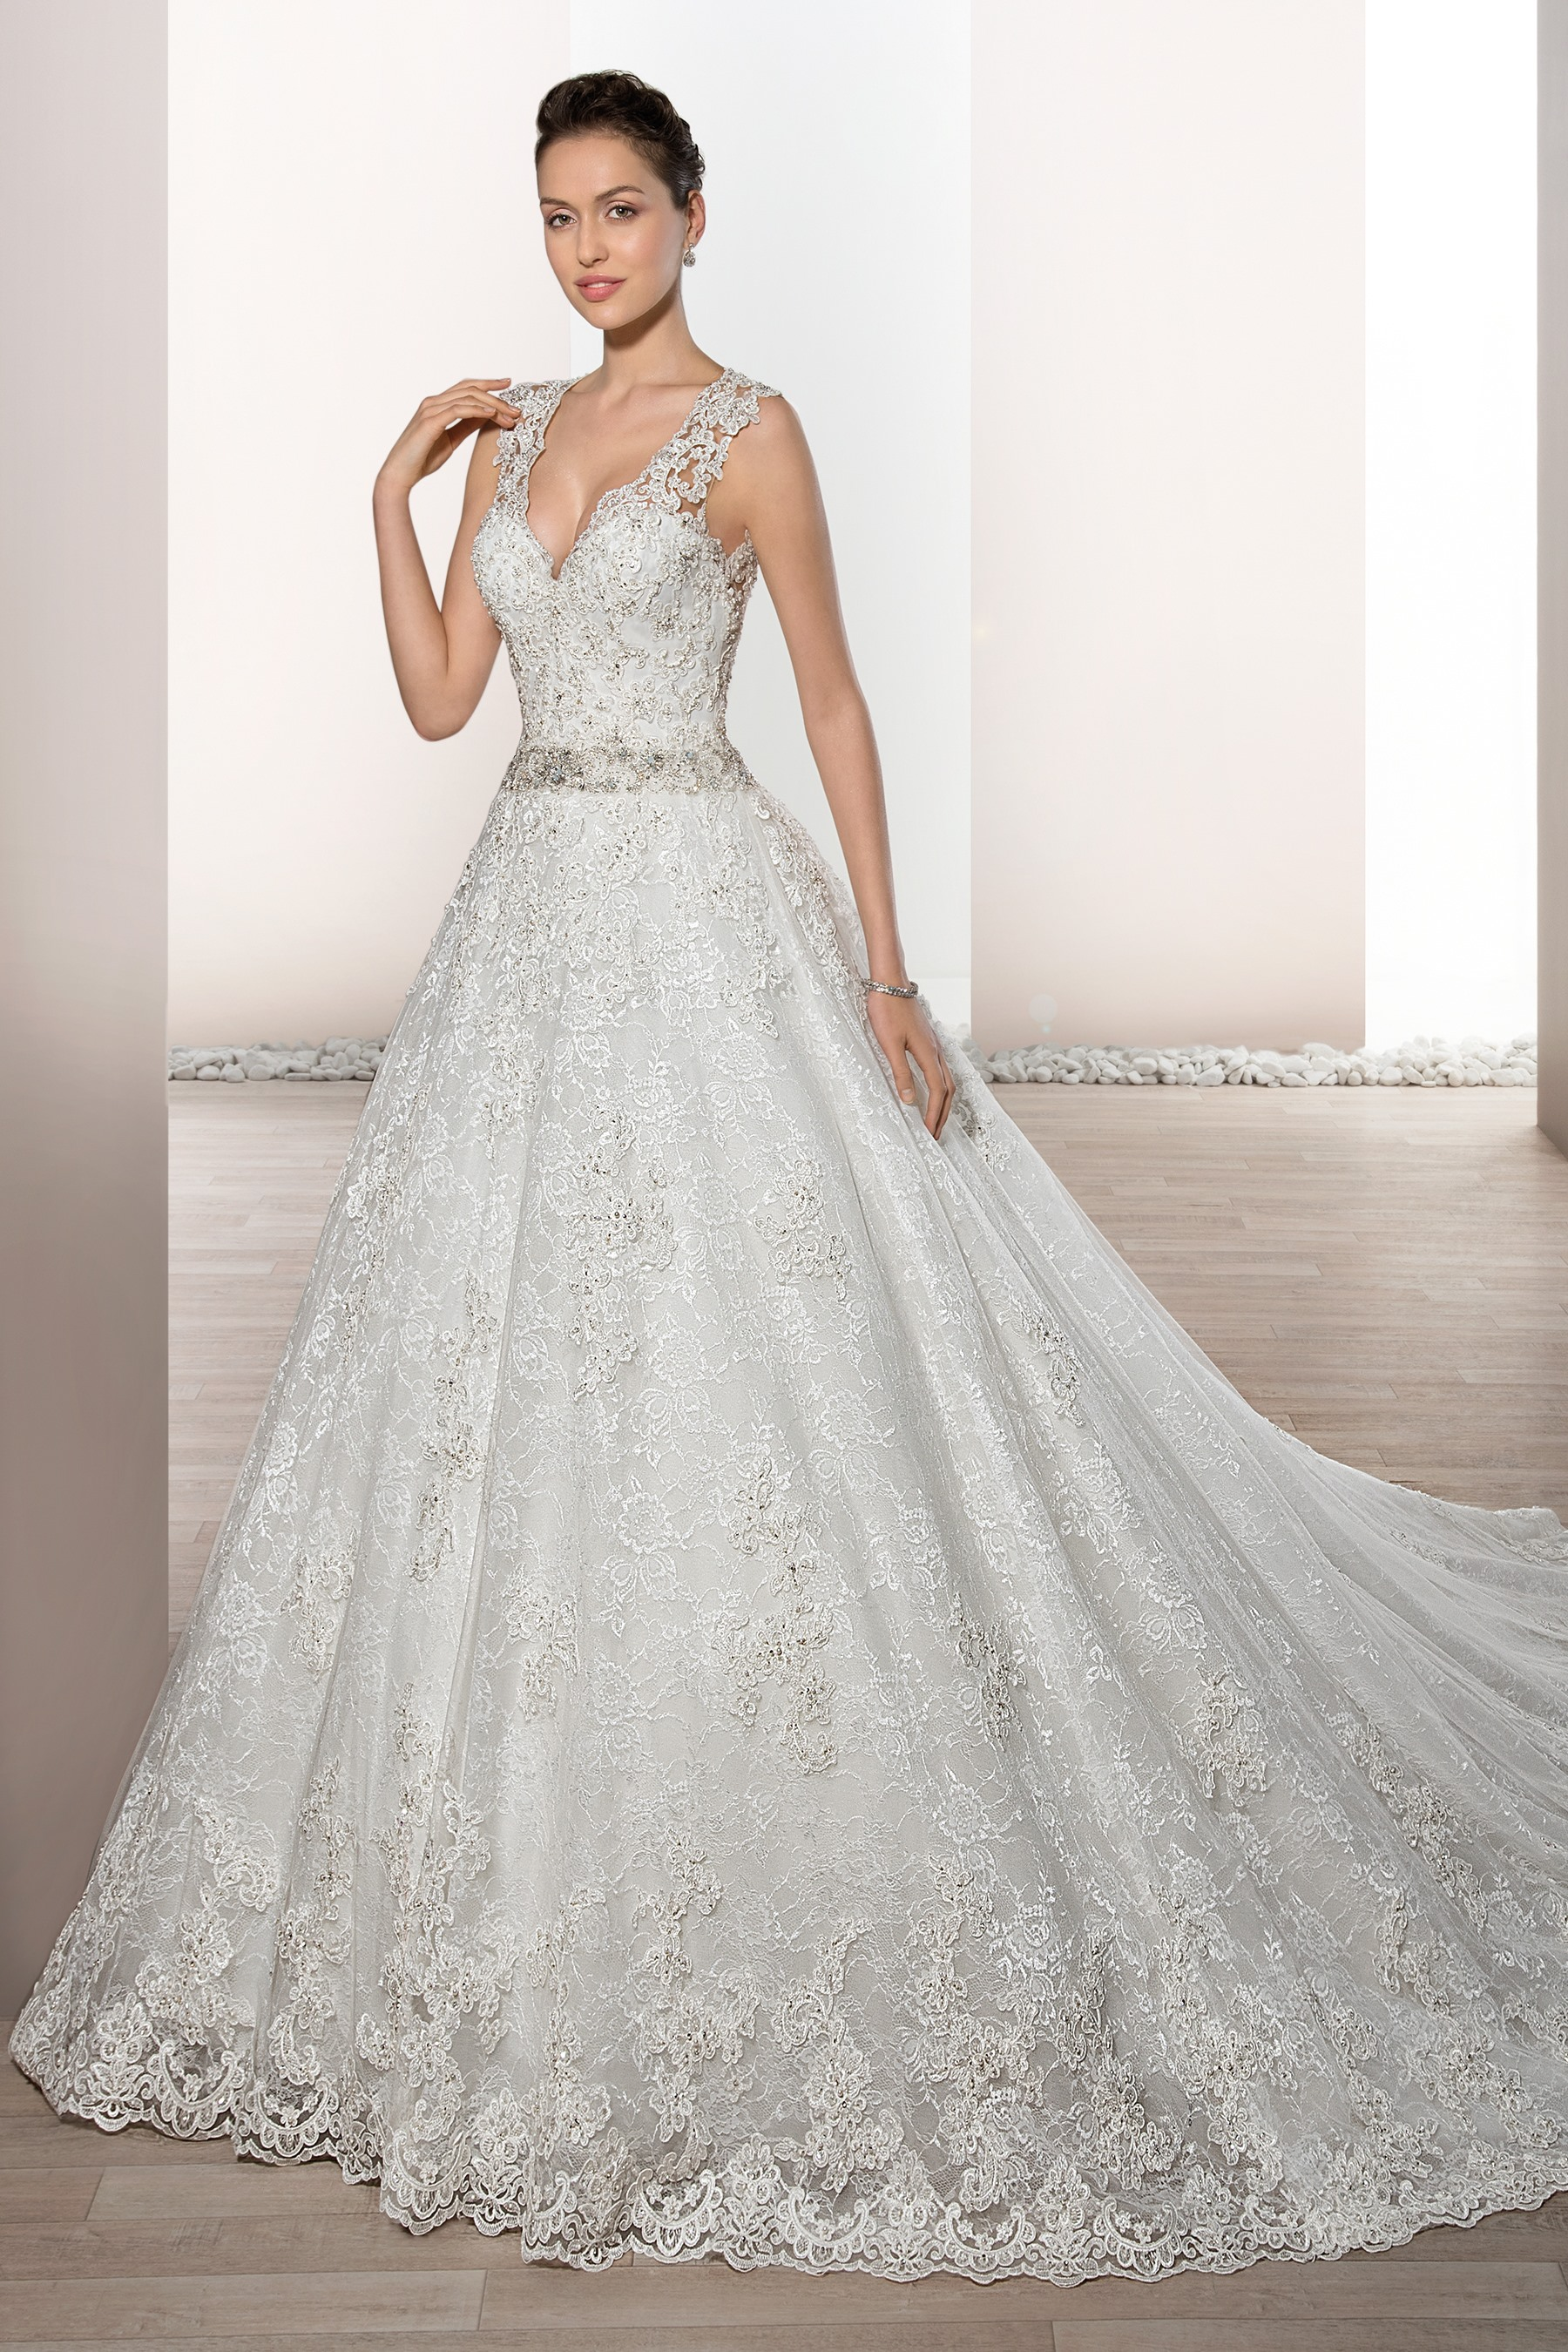 Demetrios Wedding Dresses - Nini Dress